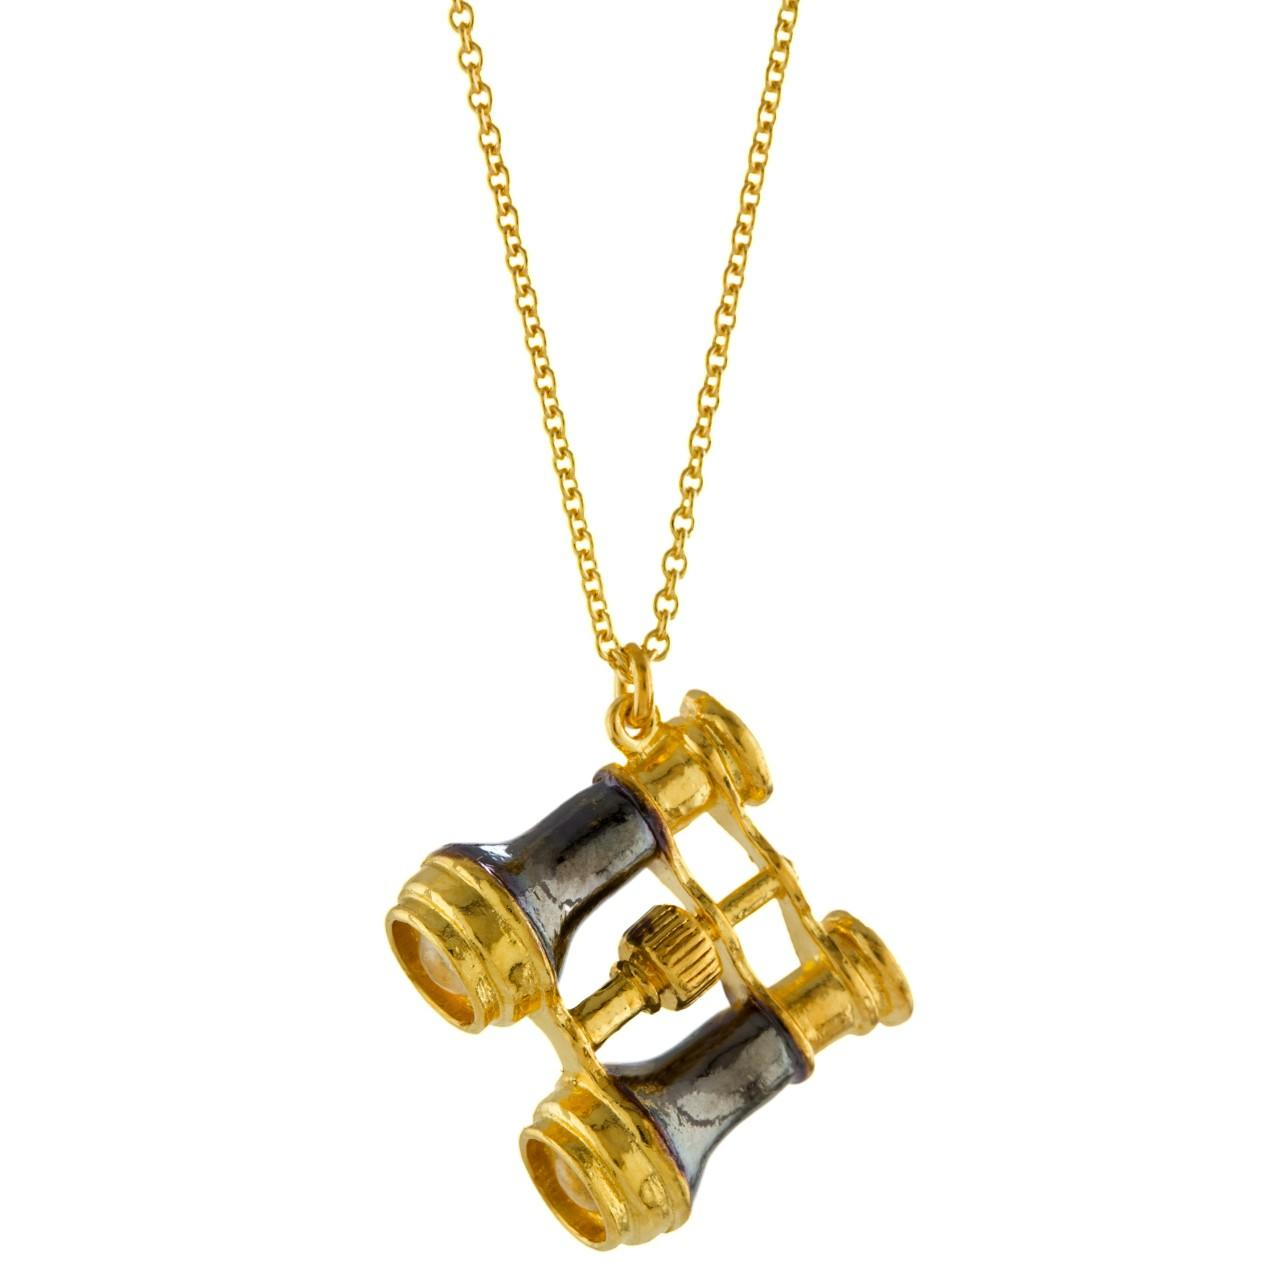 Solid silver & gold plated binoculars necklace £240 (available in store only)